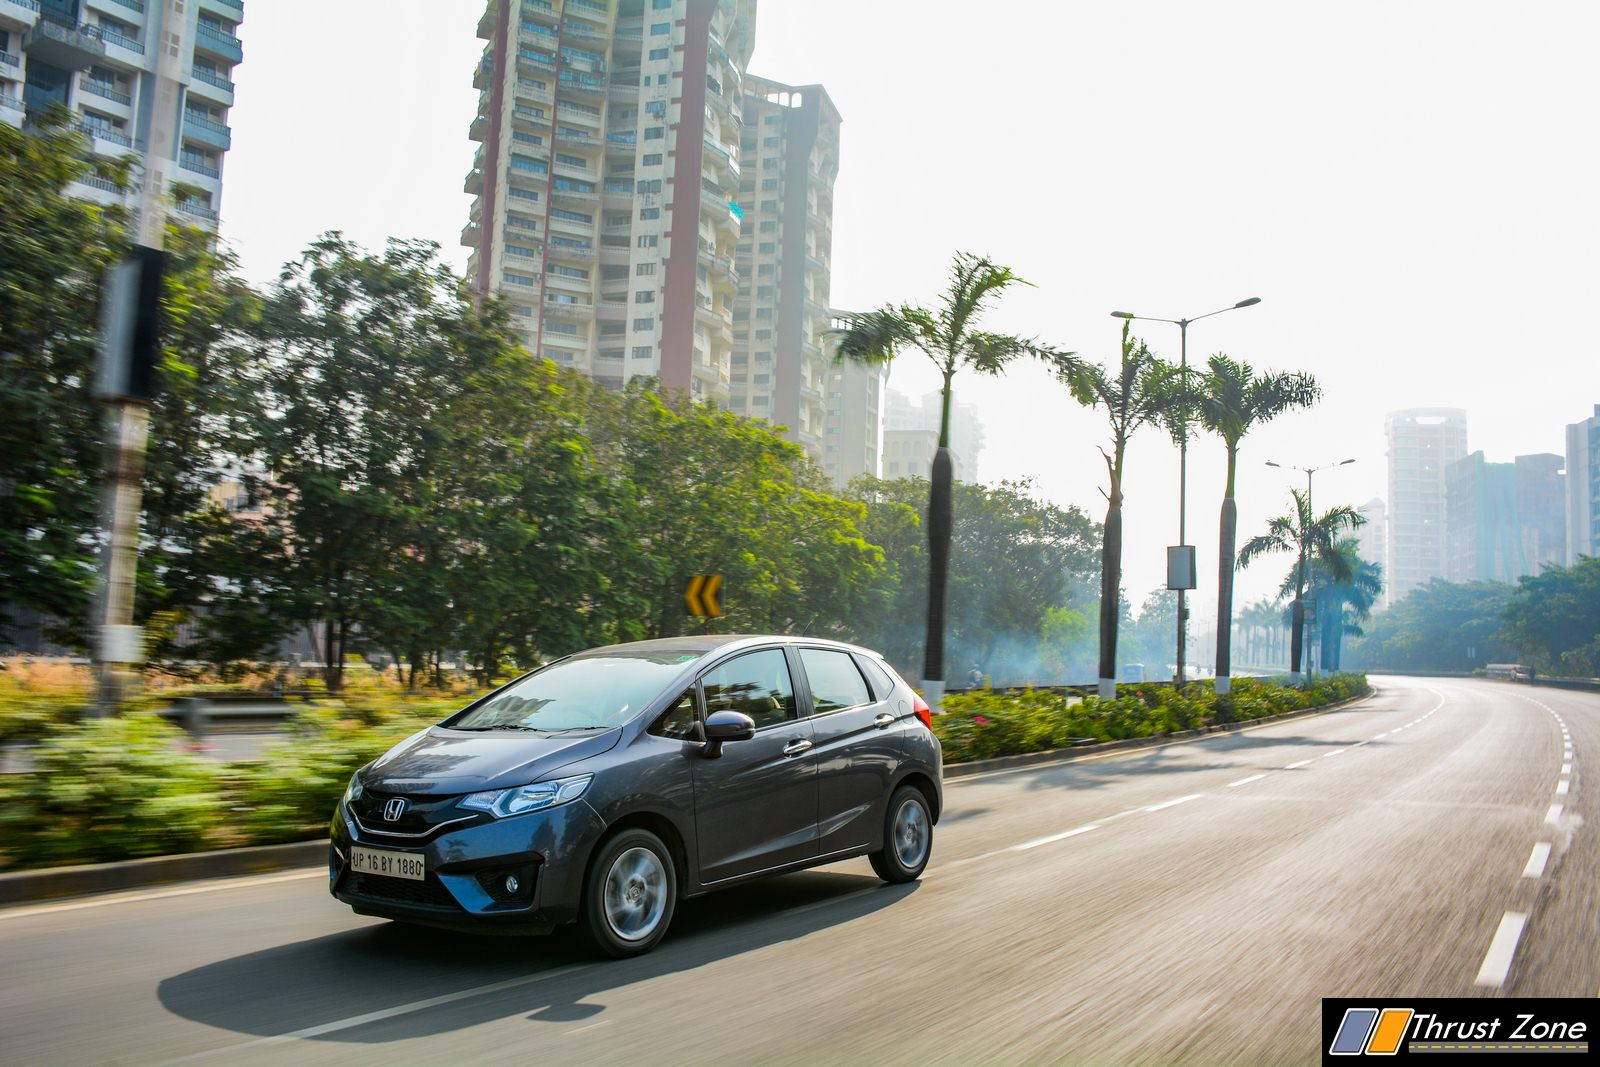 2019-Honda-Jazz-bs4-review-petrol-diesel-1